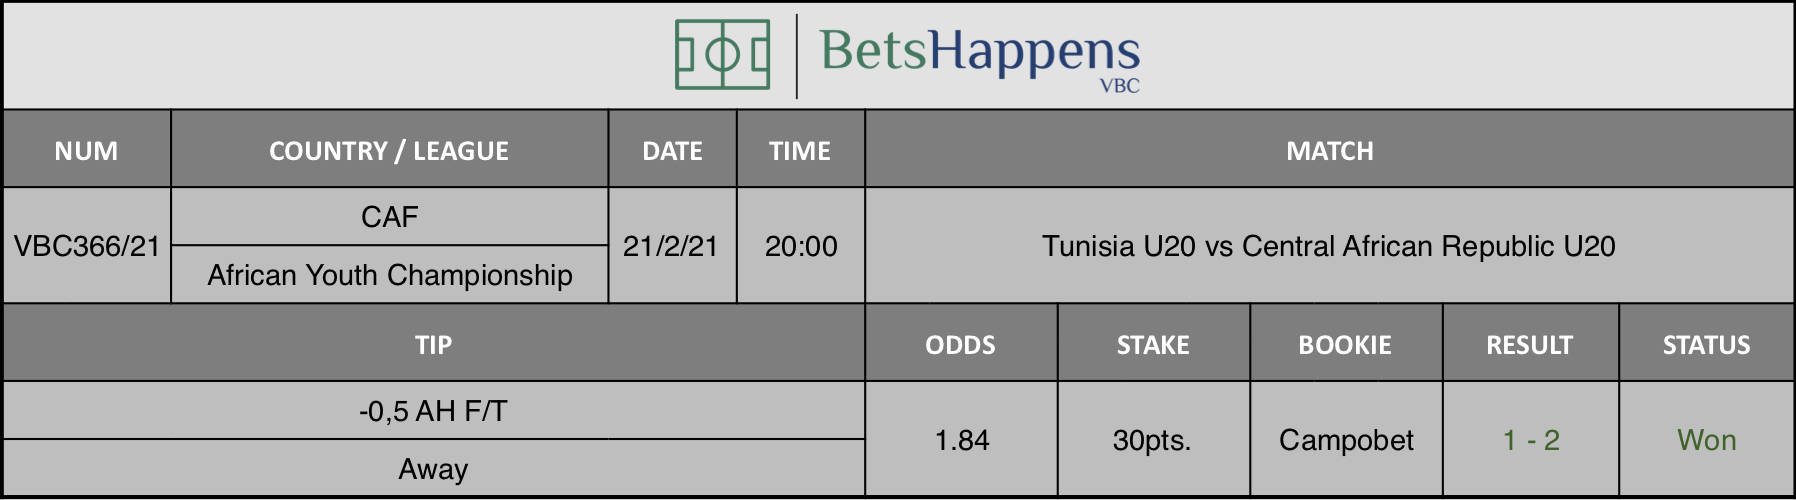 Results of our tip for the Tunisia U20 vs Central African Republic U20 match where -0,5 AH F/T Away is recommended.